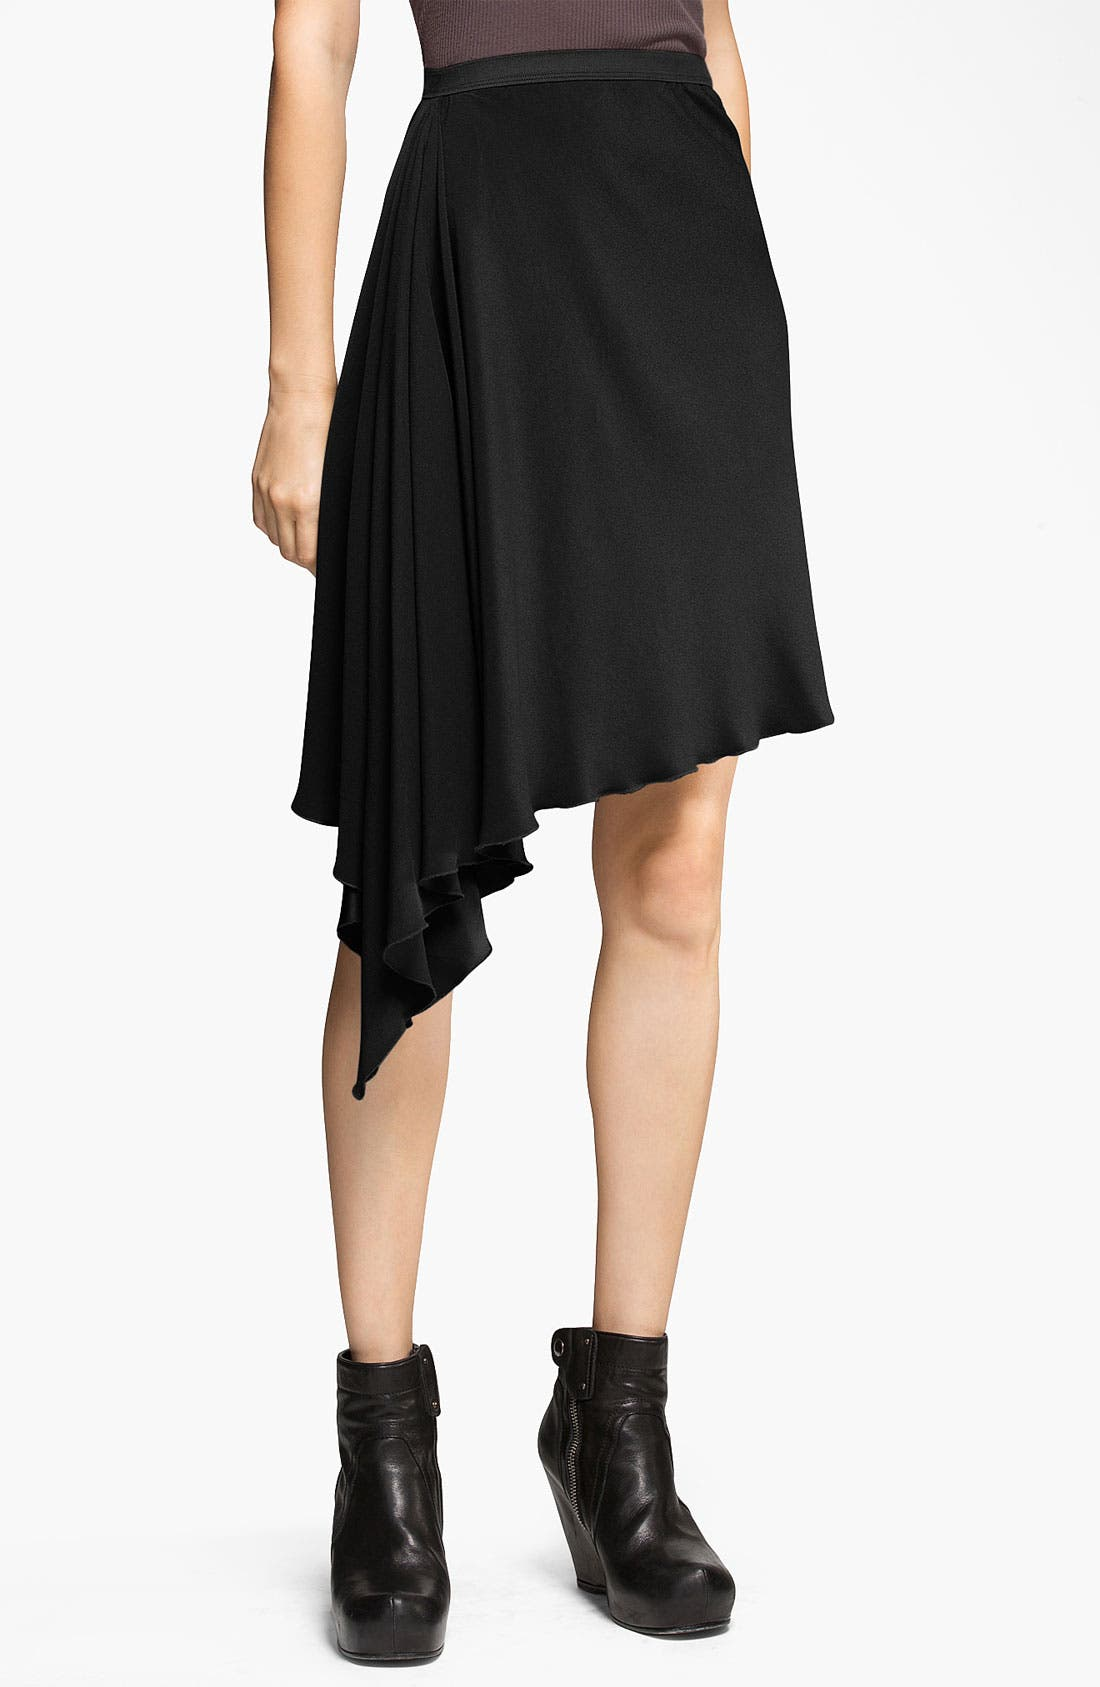 Alternate Image 1 Selected - Rick Owens Crepe Skirt